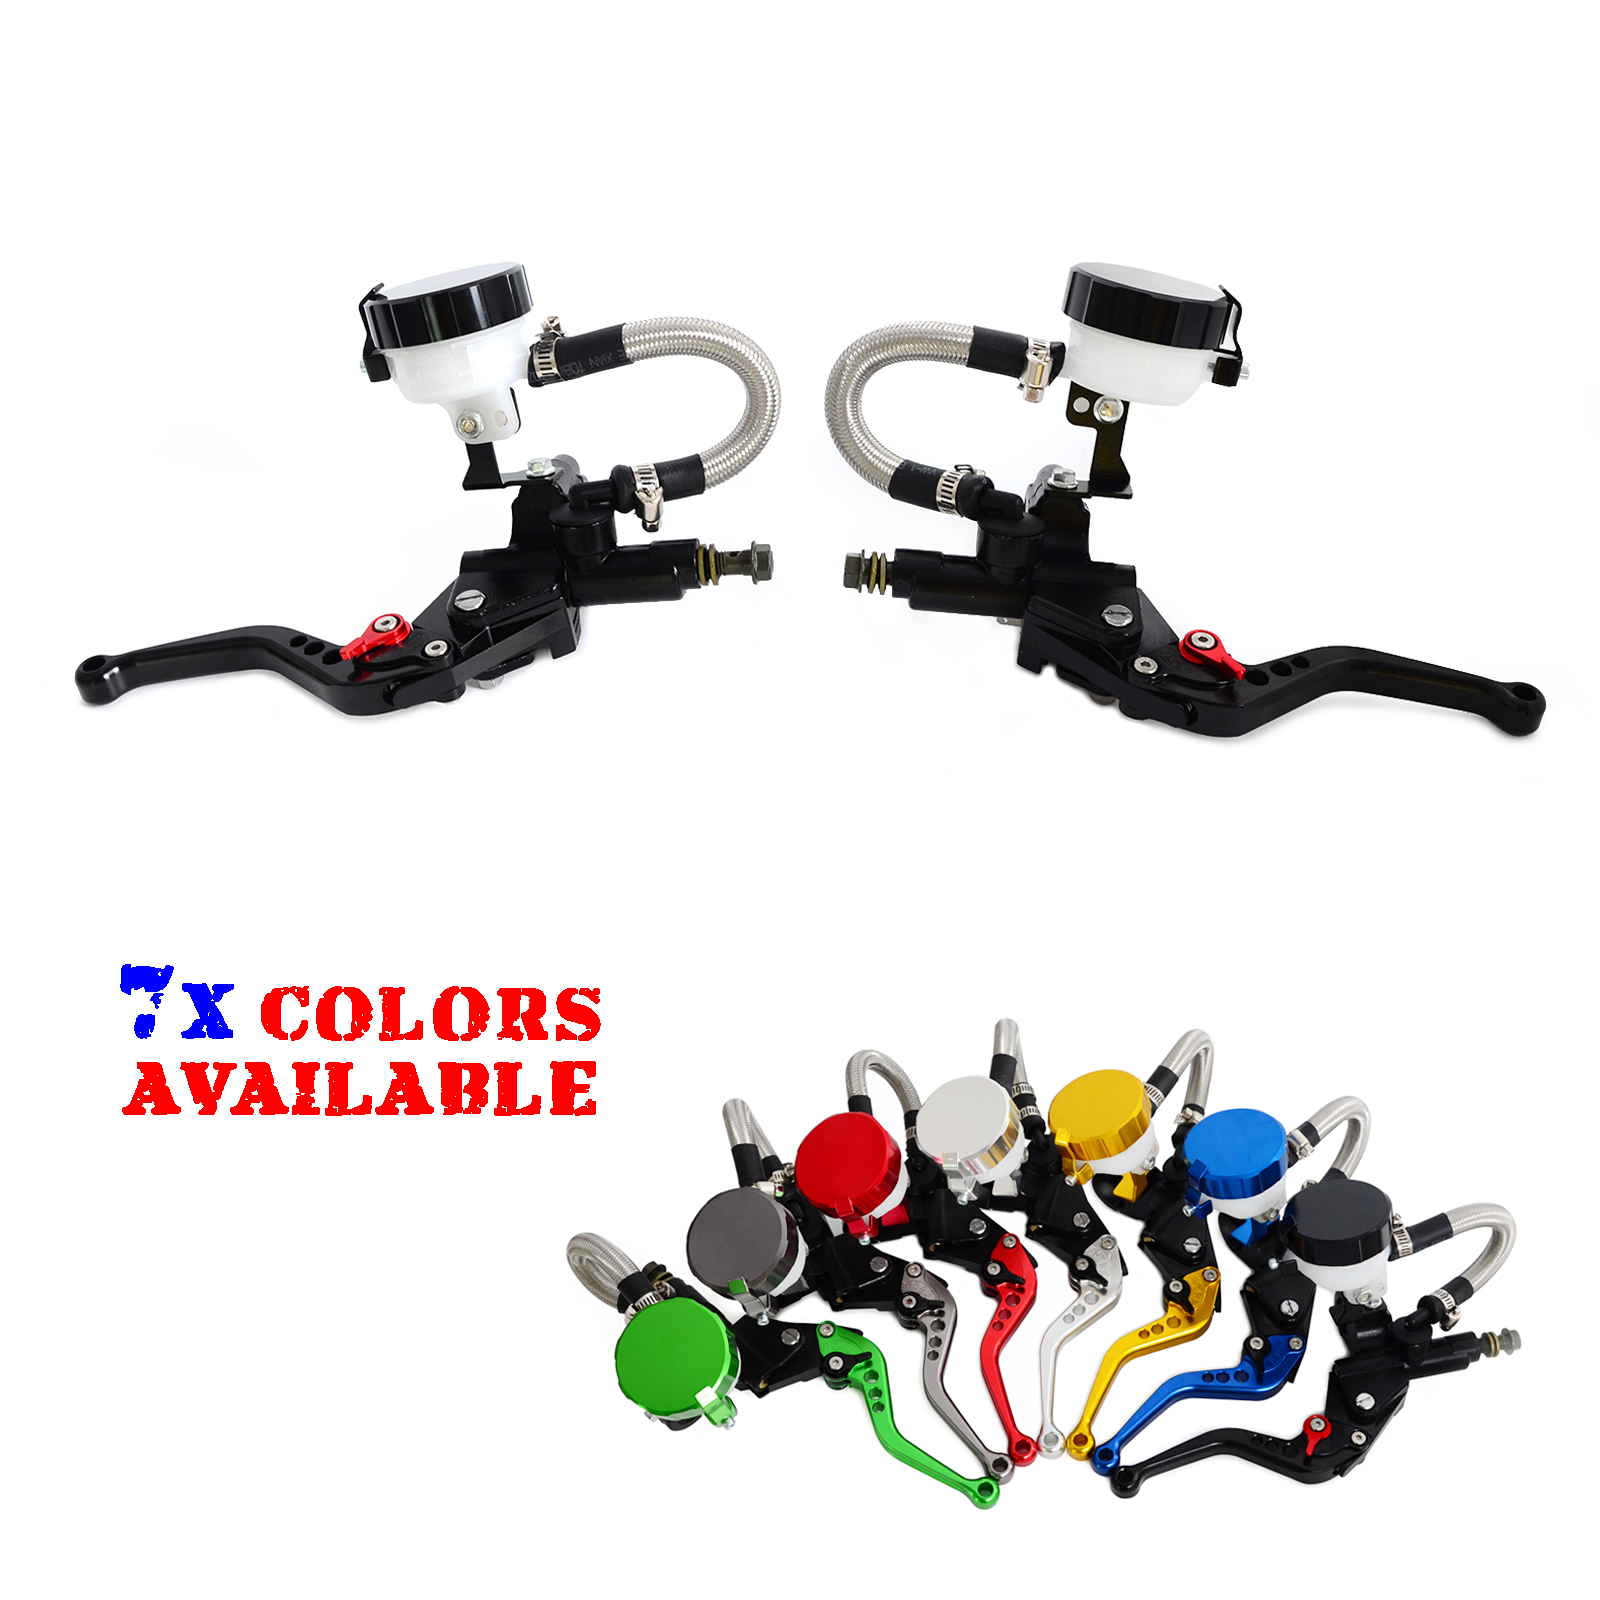 NICECNC Universal Motorcycle 7/8Clutch Brake Levers Master Cylinder Oil Fluid Reservoir Motocross Enduro Supermoto Dirt Bike motorcycle universal cnc billet pivot foldable clutch levers 22mm 7 8 dirt bike motocross enduro supermoto black